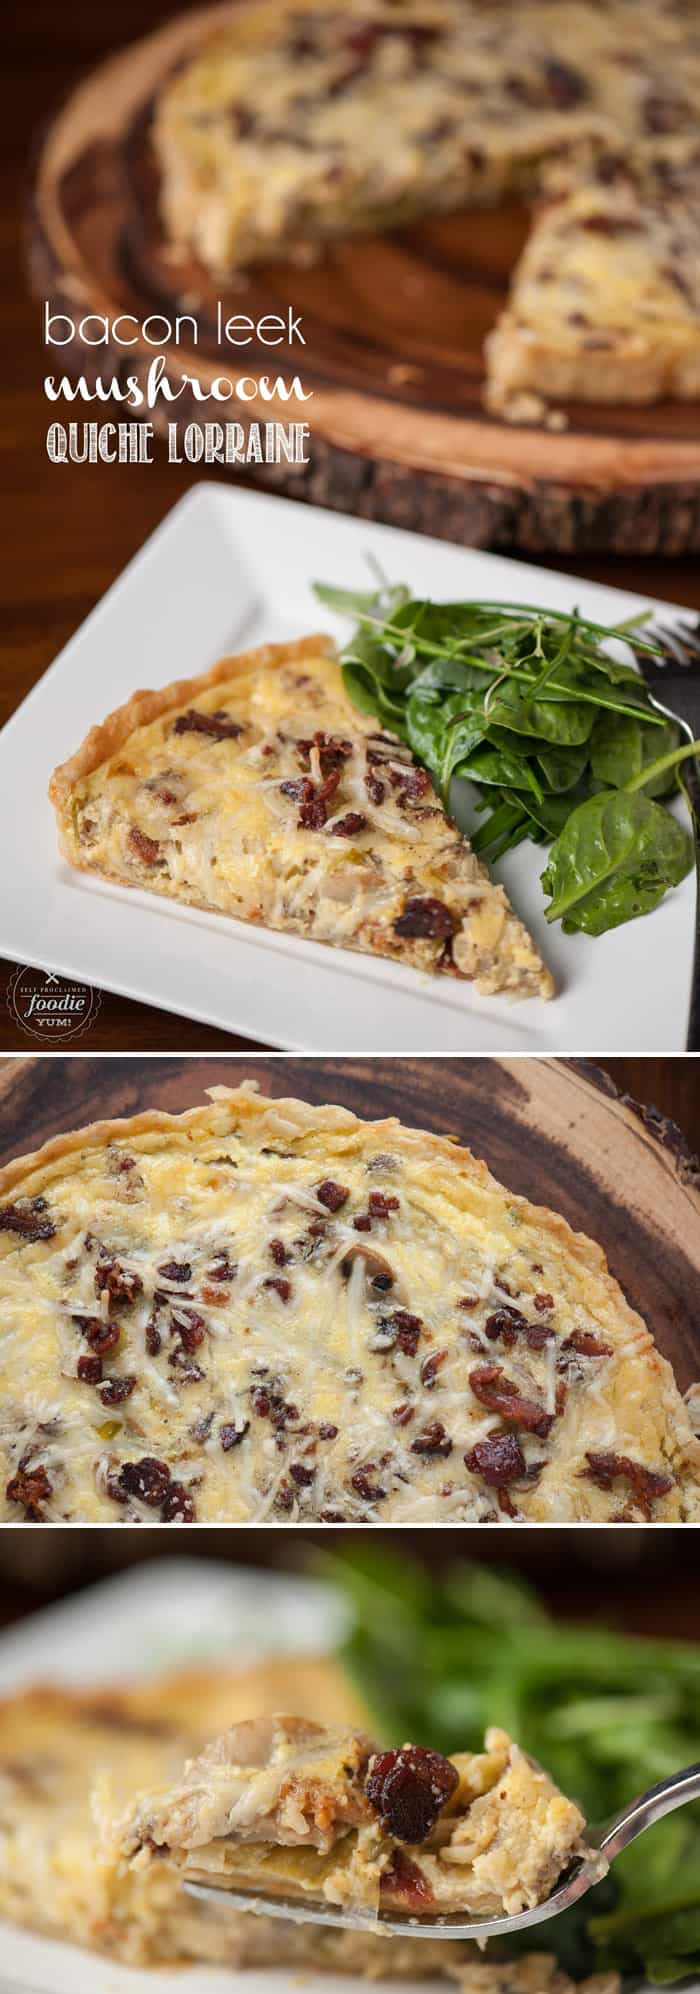 This decadent Bacon Leek Mushroom Quiche Lorraine is so incredibly delicious. Paired with lightly dressed greens, it is perfect for brunch or dinner.